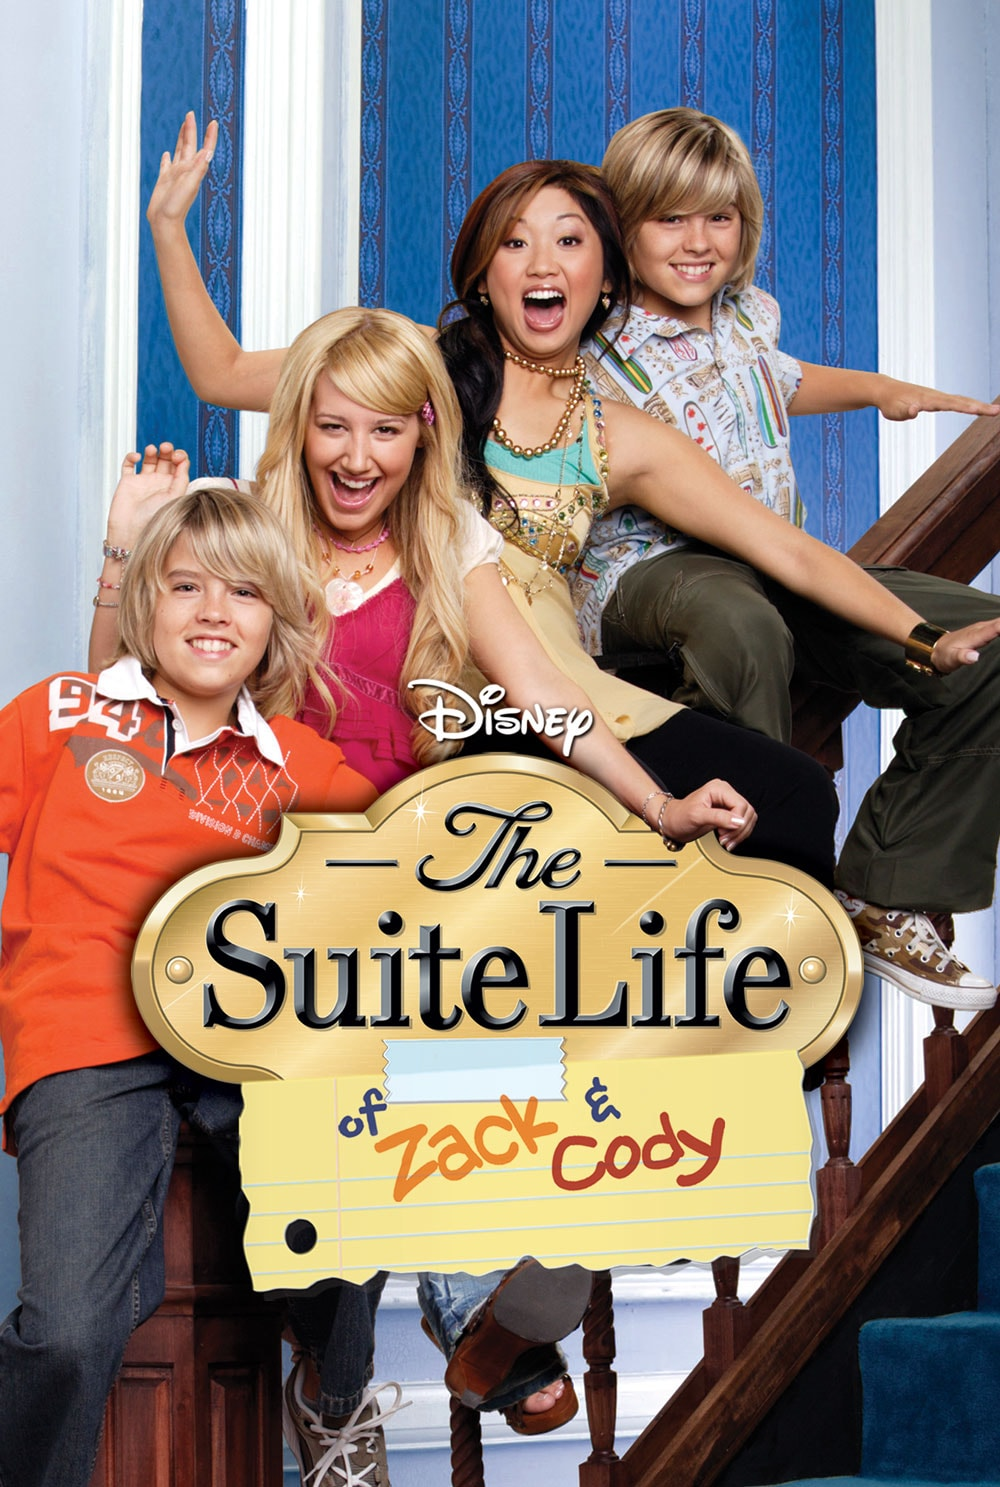 The Suite Life of Zack and Cody Products